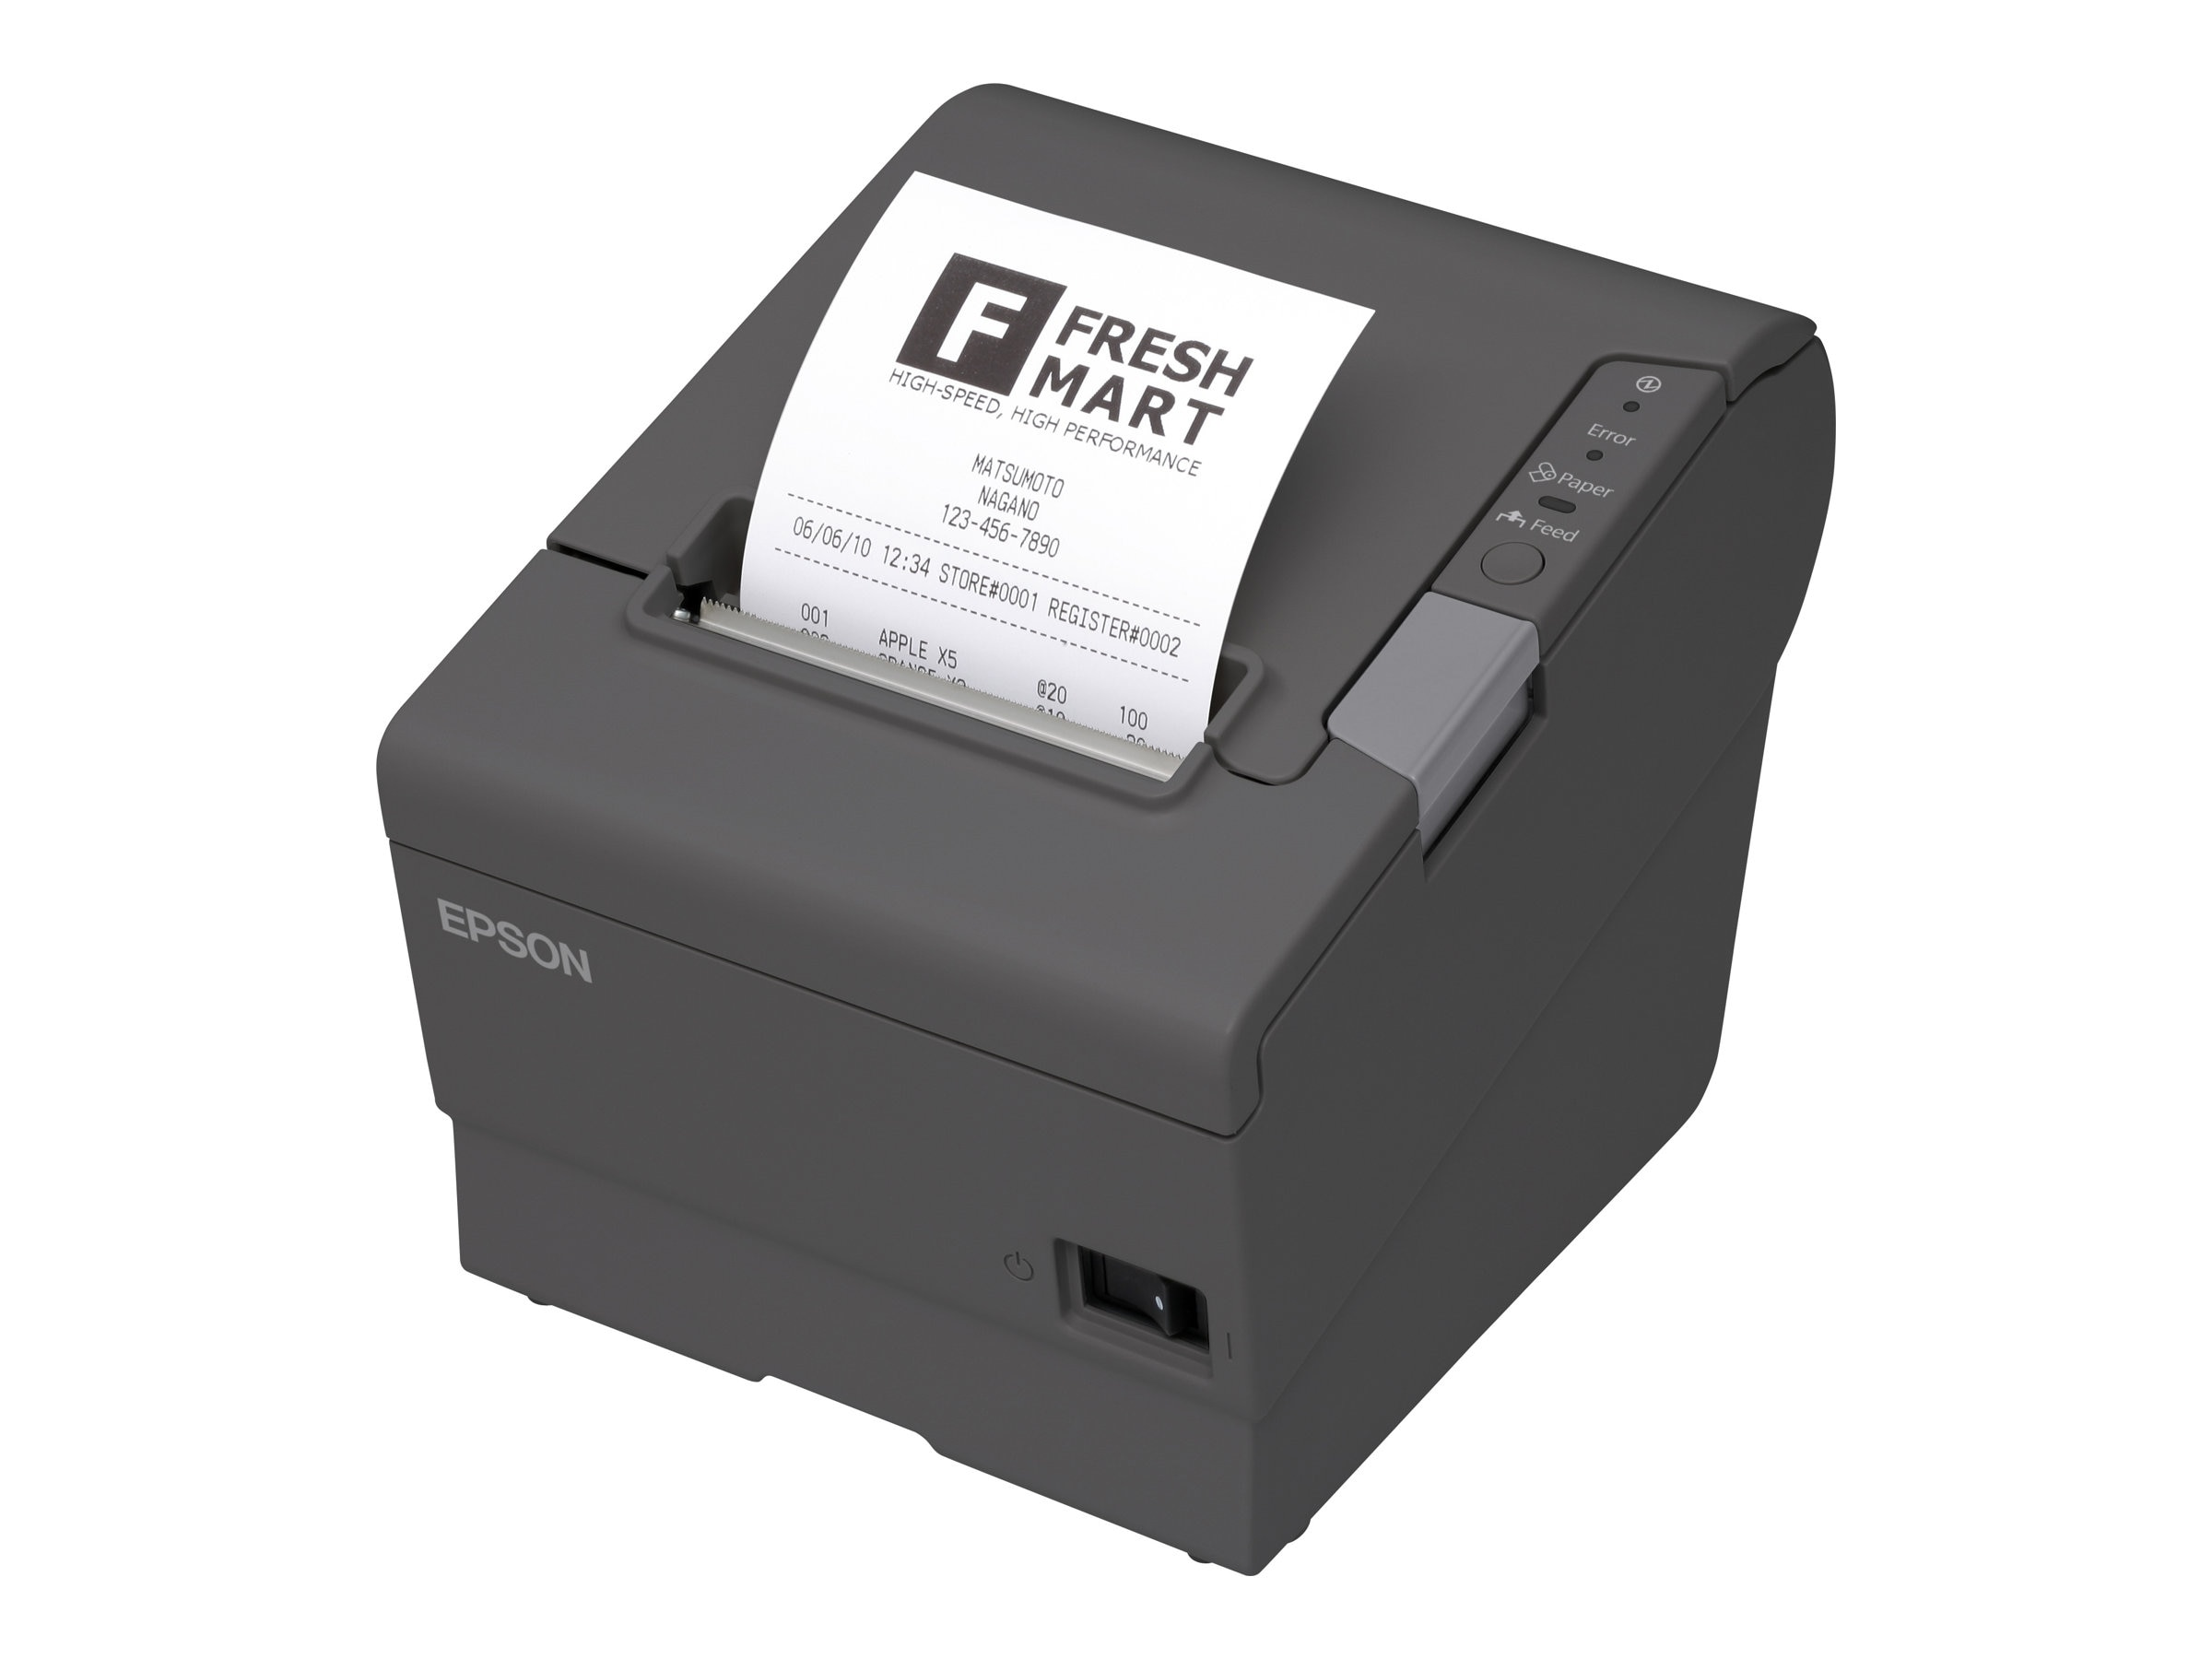 Epson TM-T88V USB Serial POS Printer - Dark Gray w  PS180 Power Supply, C31CA85084, 11676962, Printers - POS Receipt